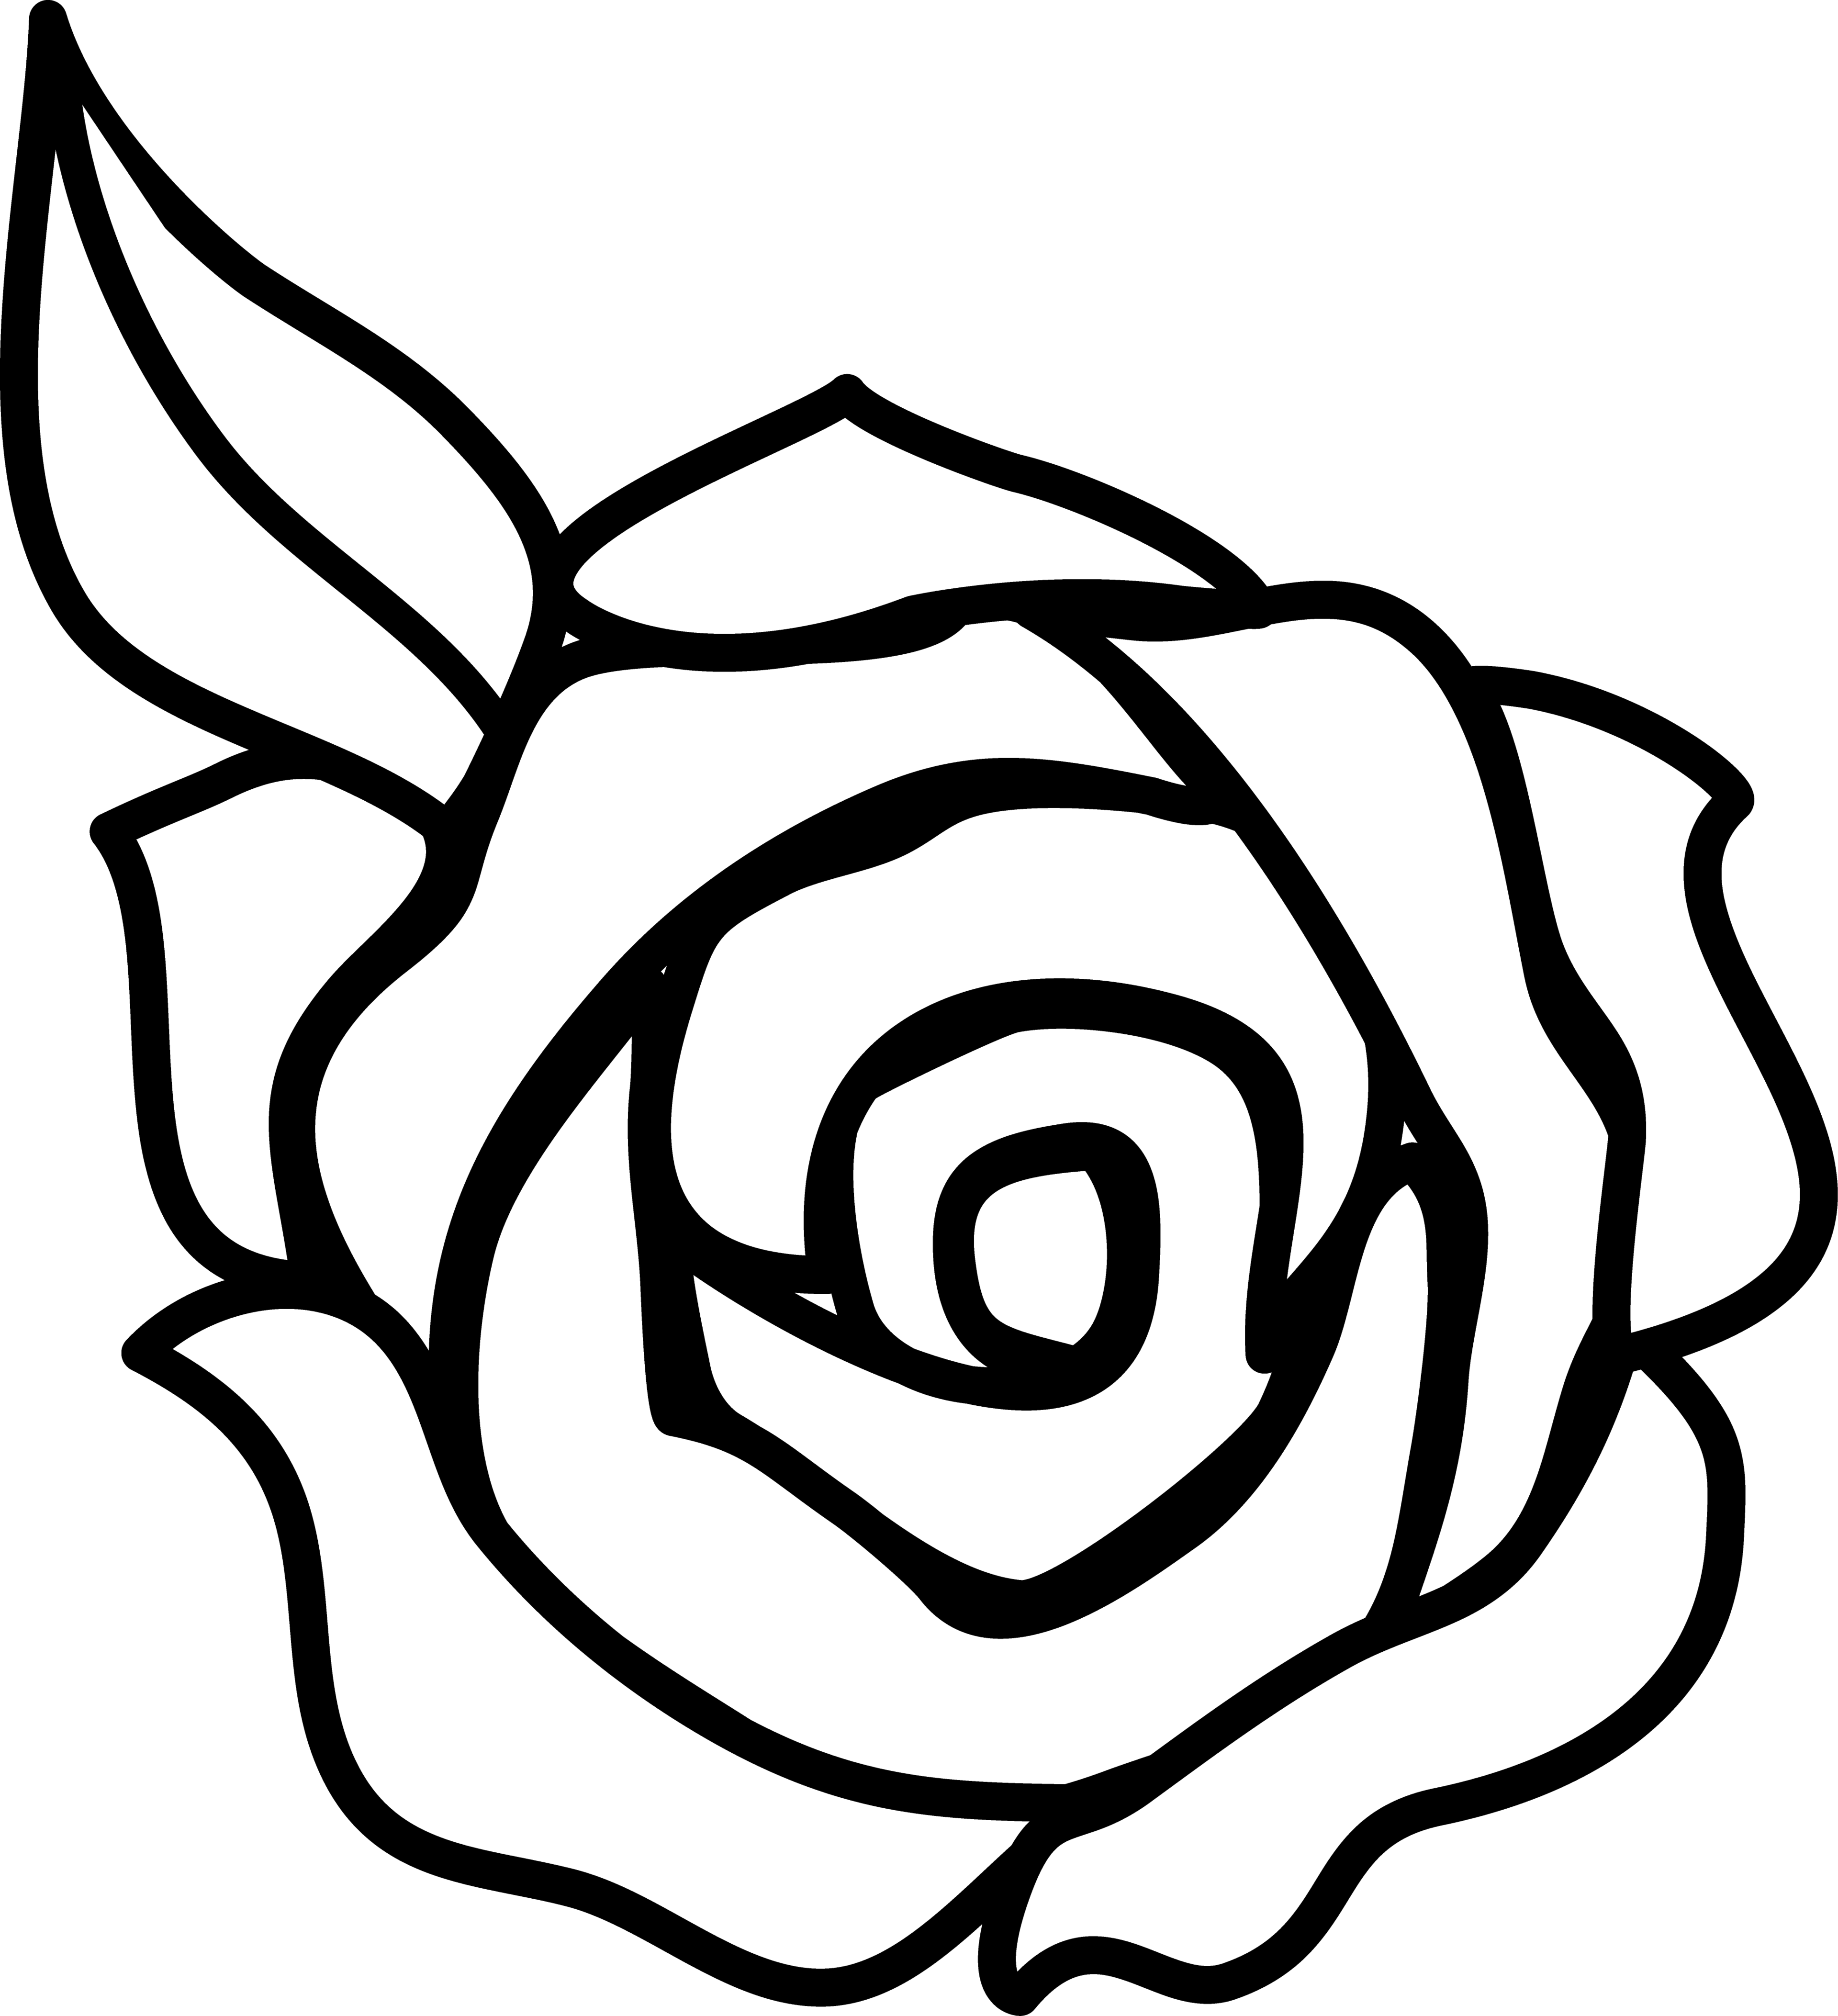 Simple rose outline clipart